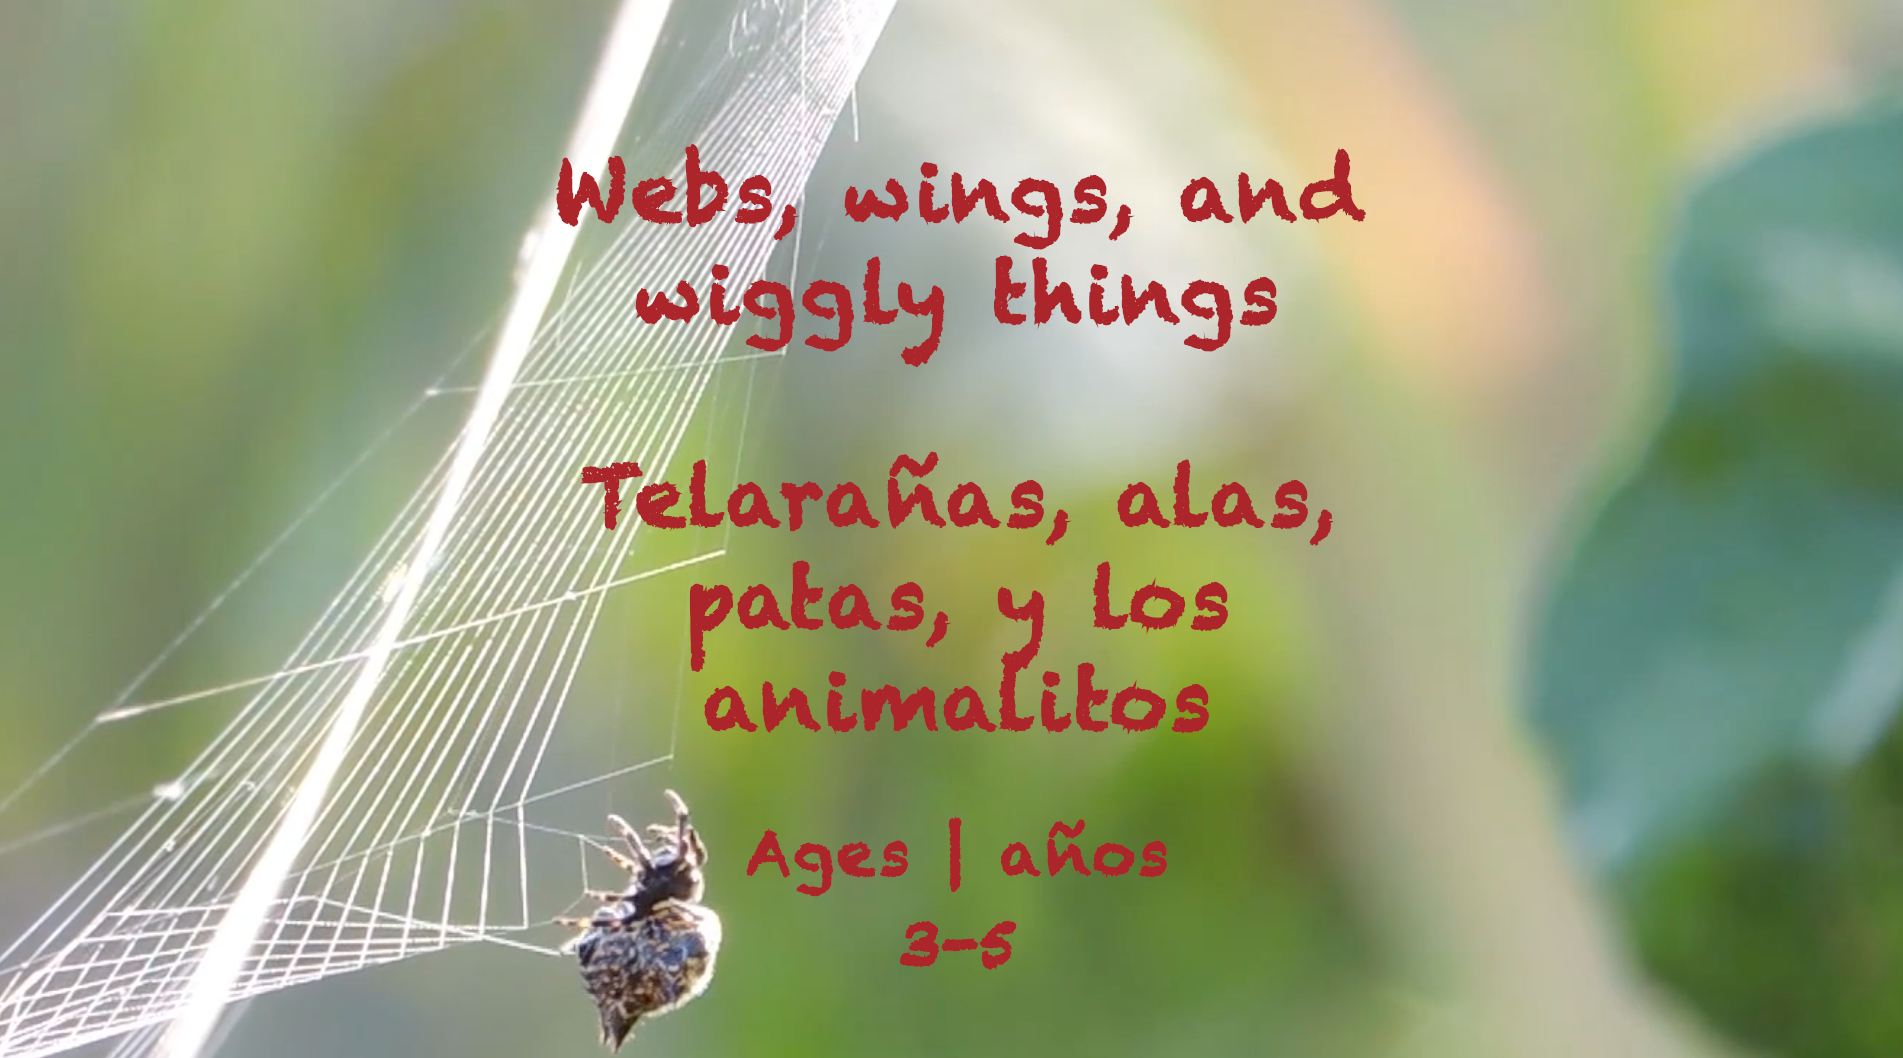 Week 36 Webs Wings and Wiggly Things Card Ages 3-5